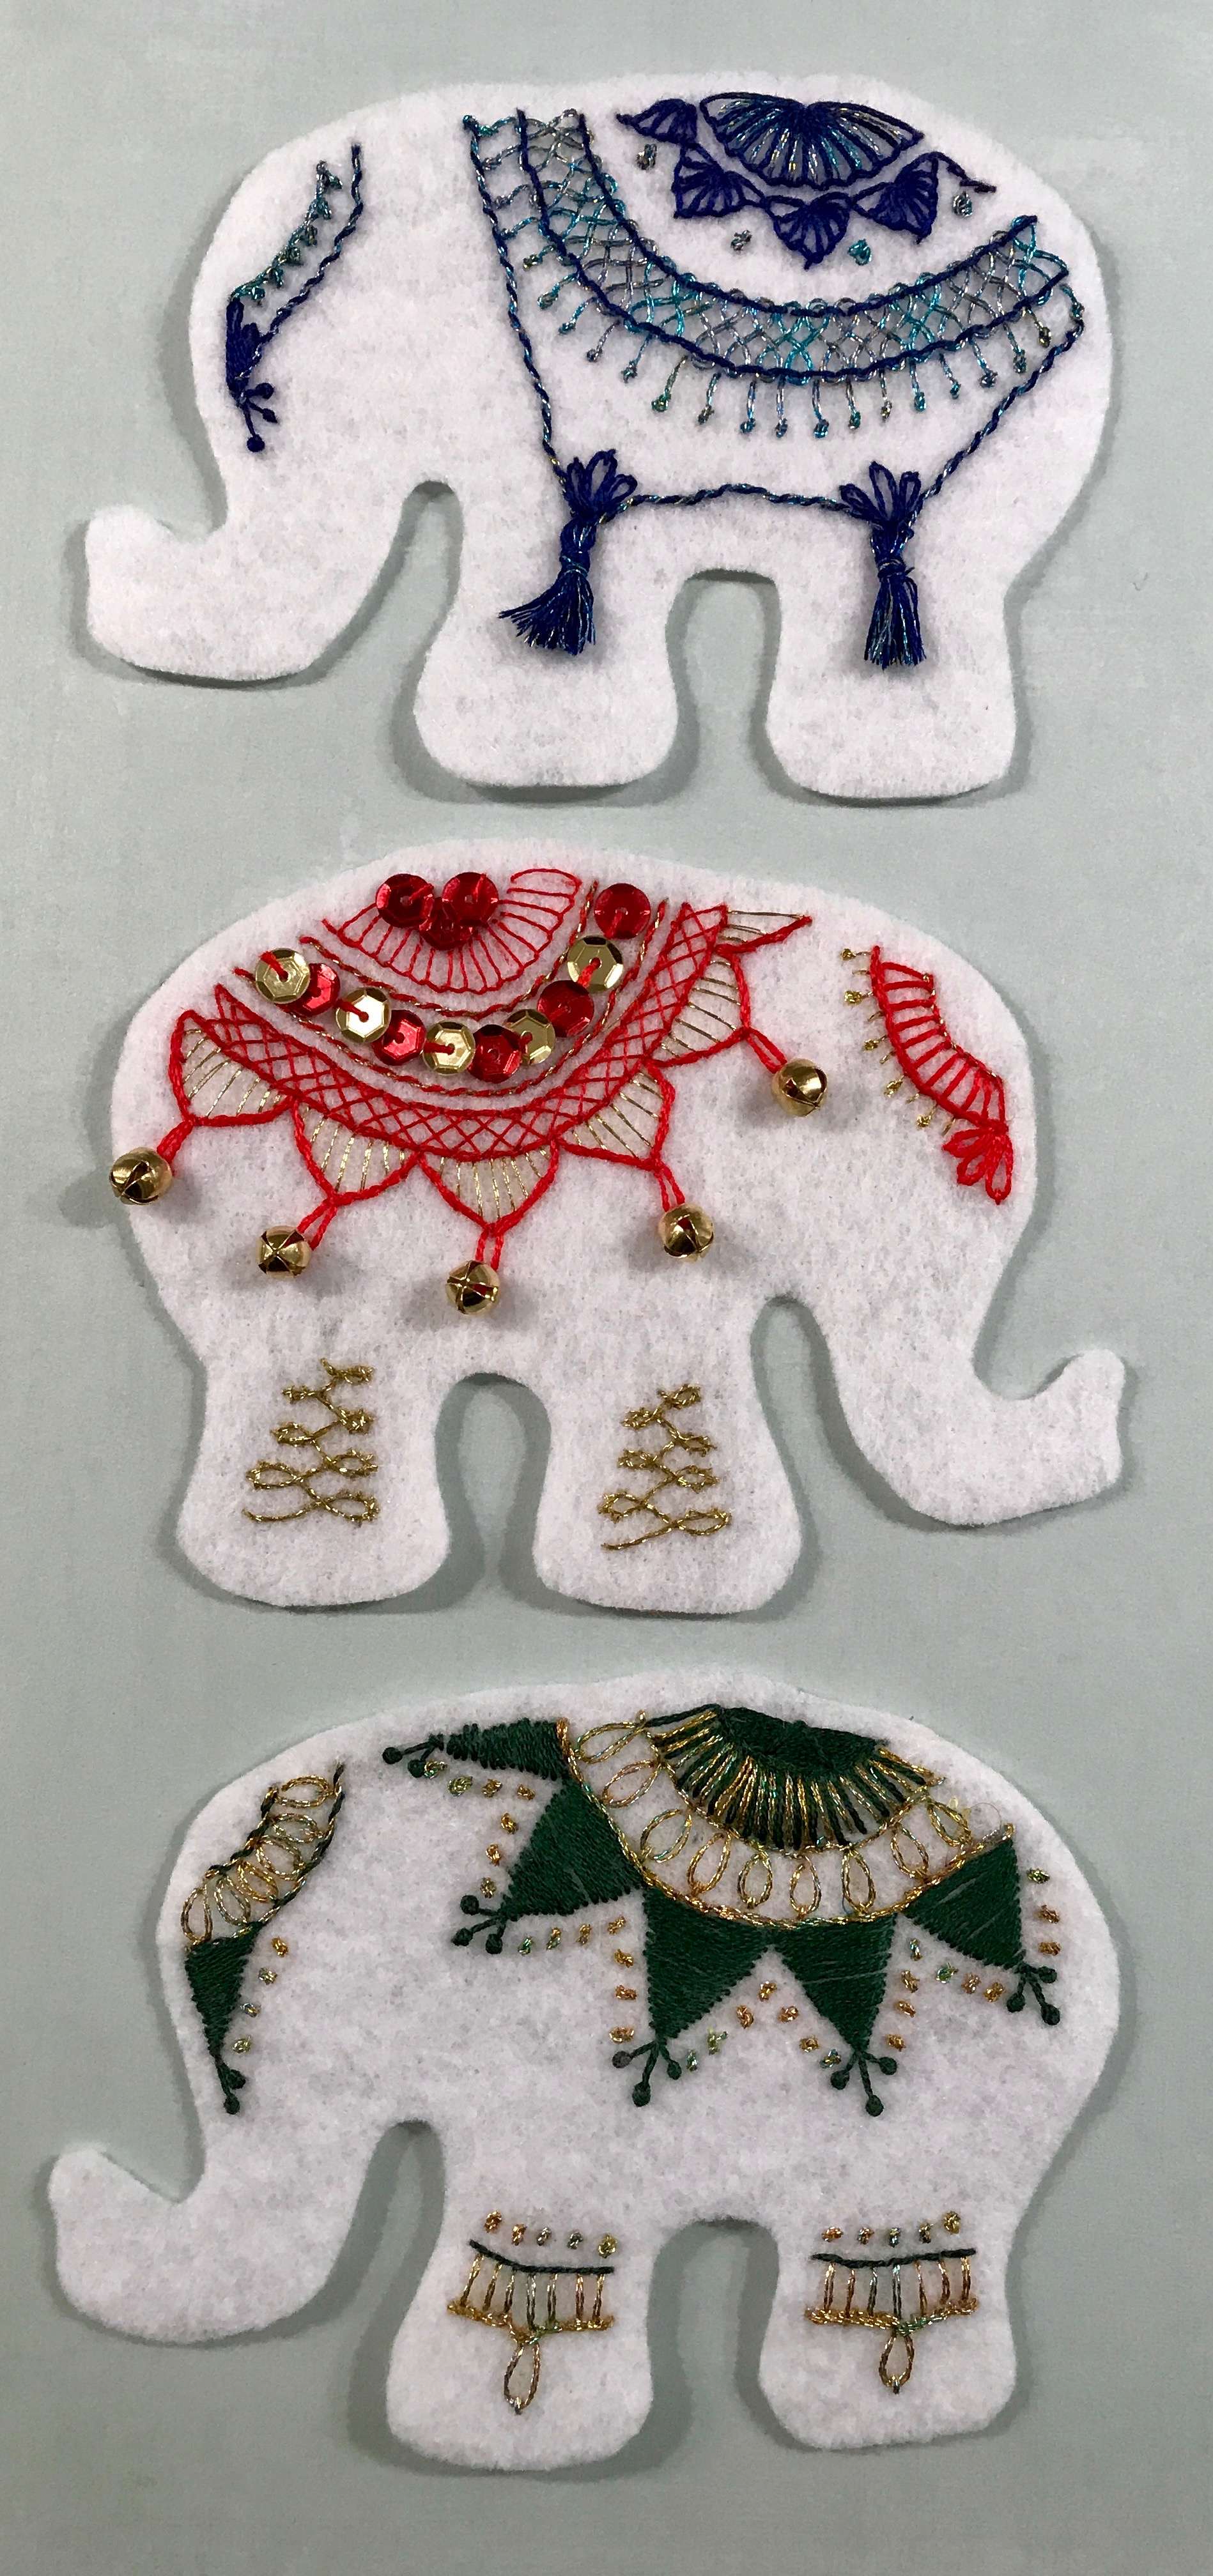 White Elephant Felt Ornament Embroidery